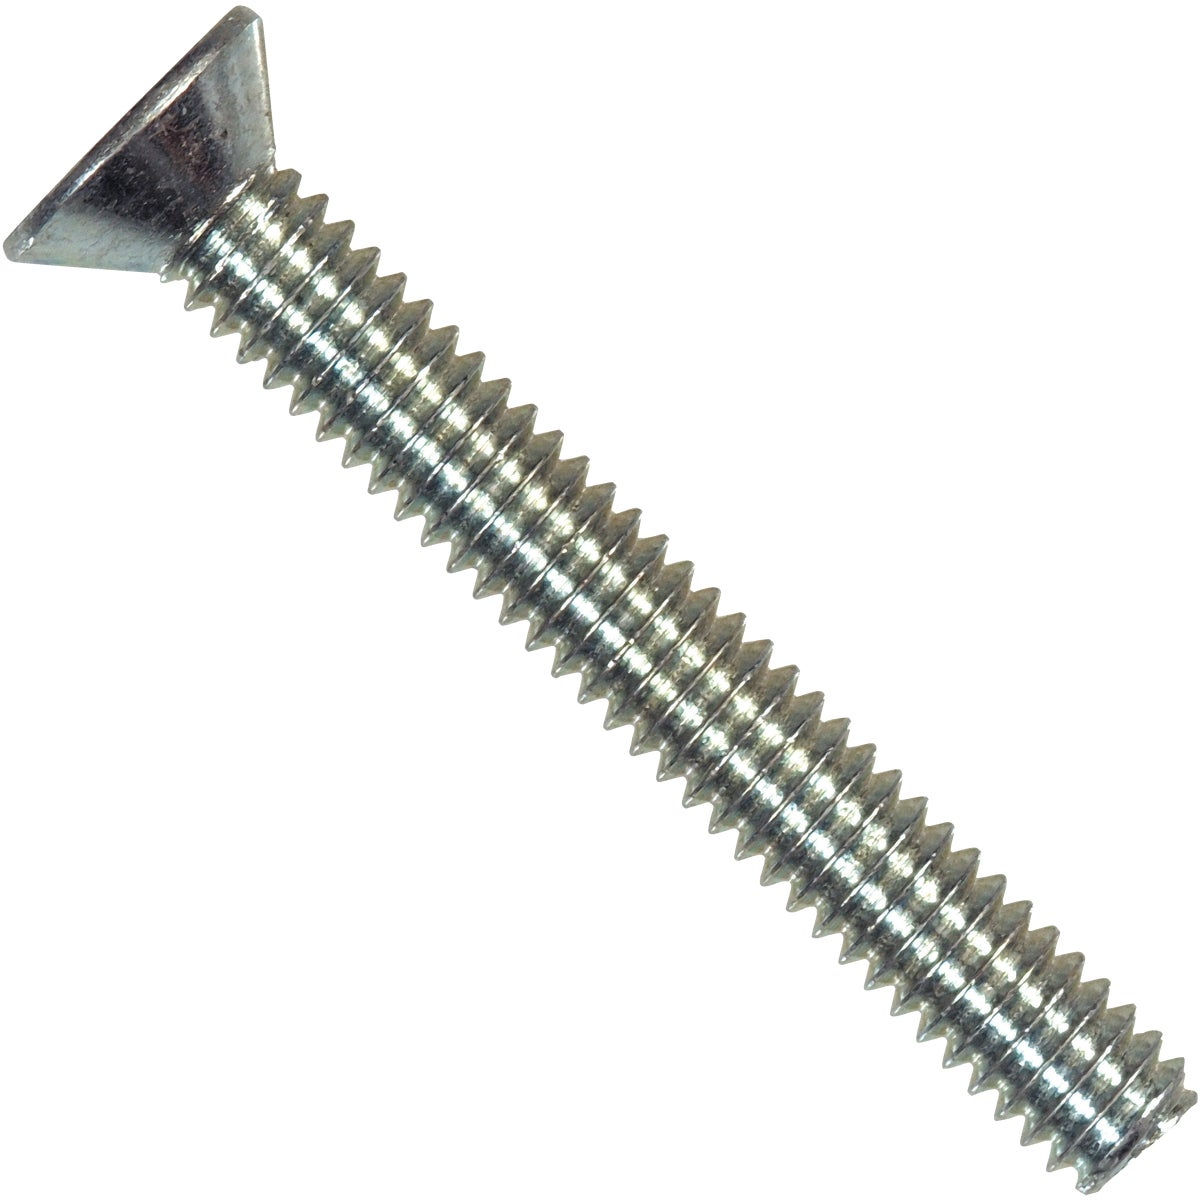 8-32X1 PH FH MACH SCREW - 101058 by Hillman Fastener